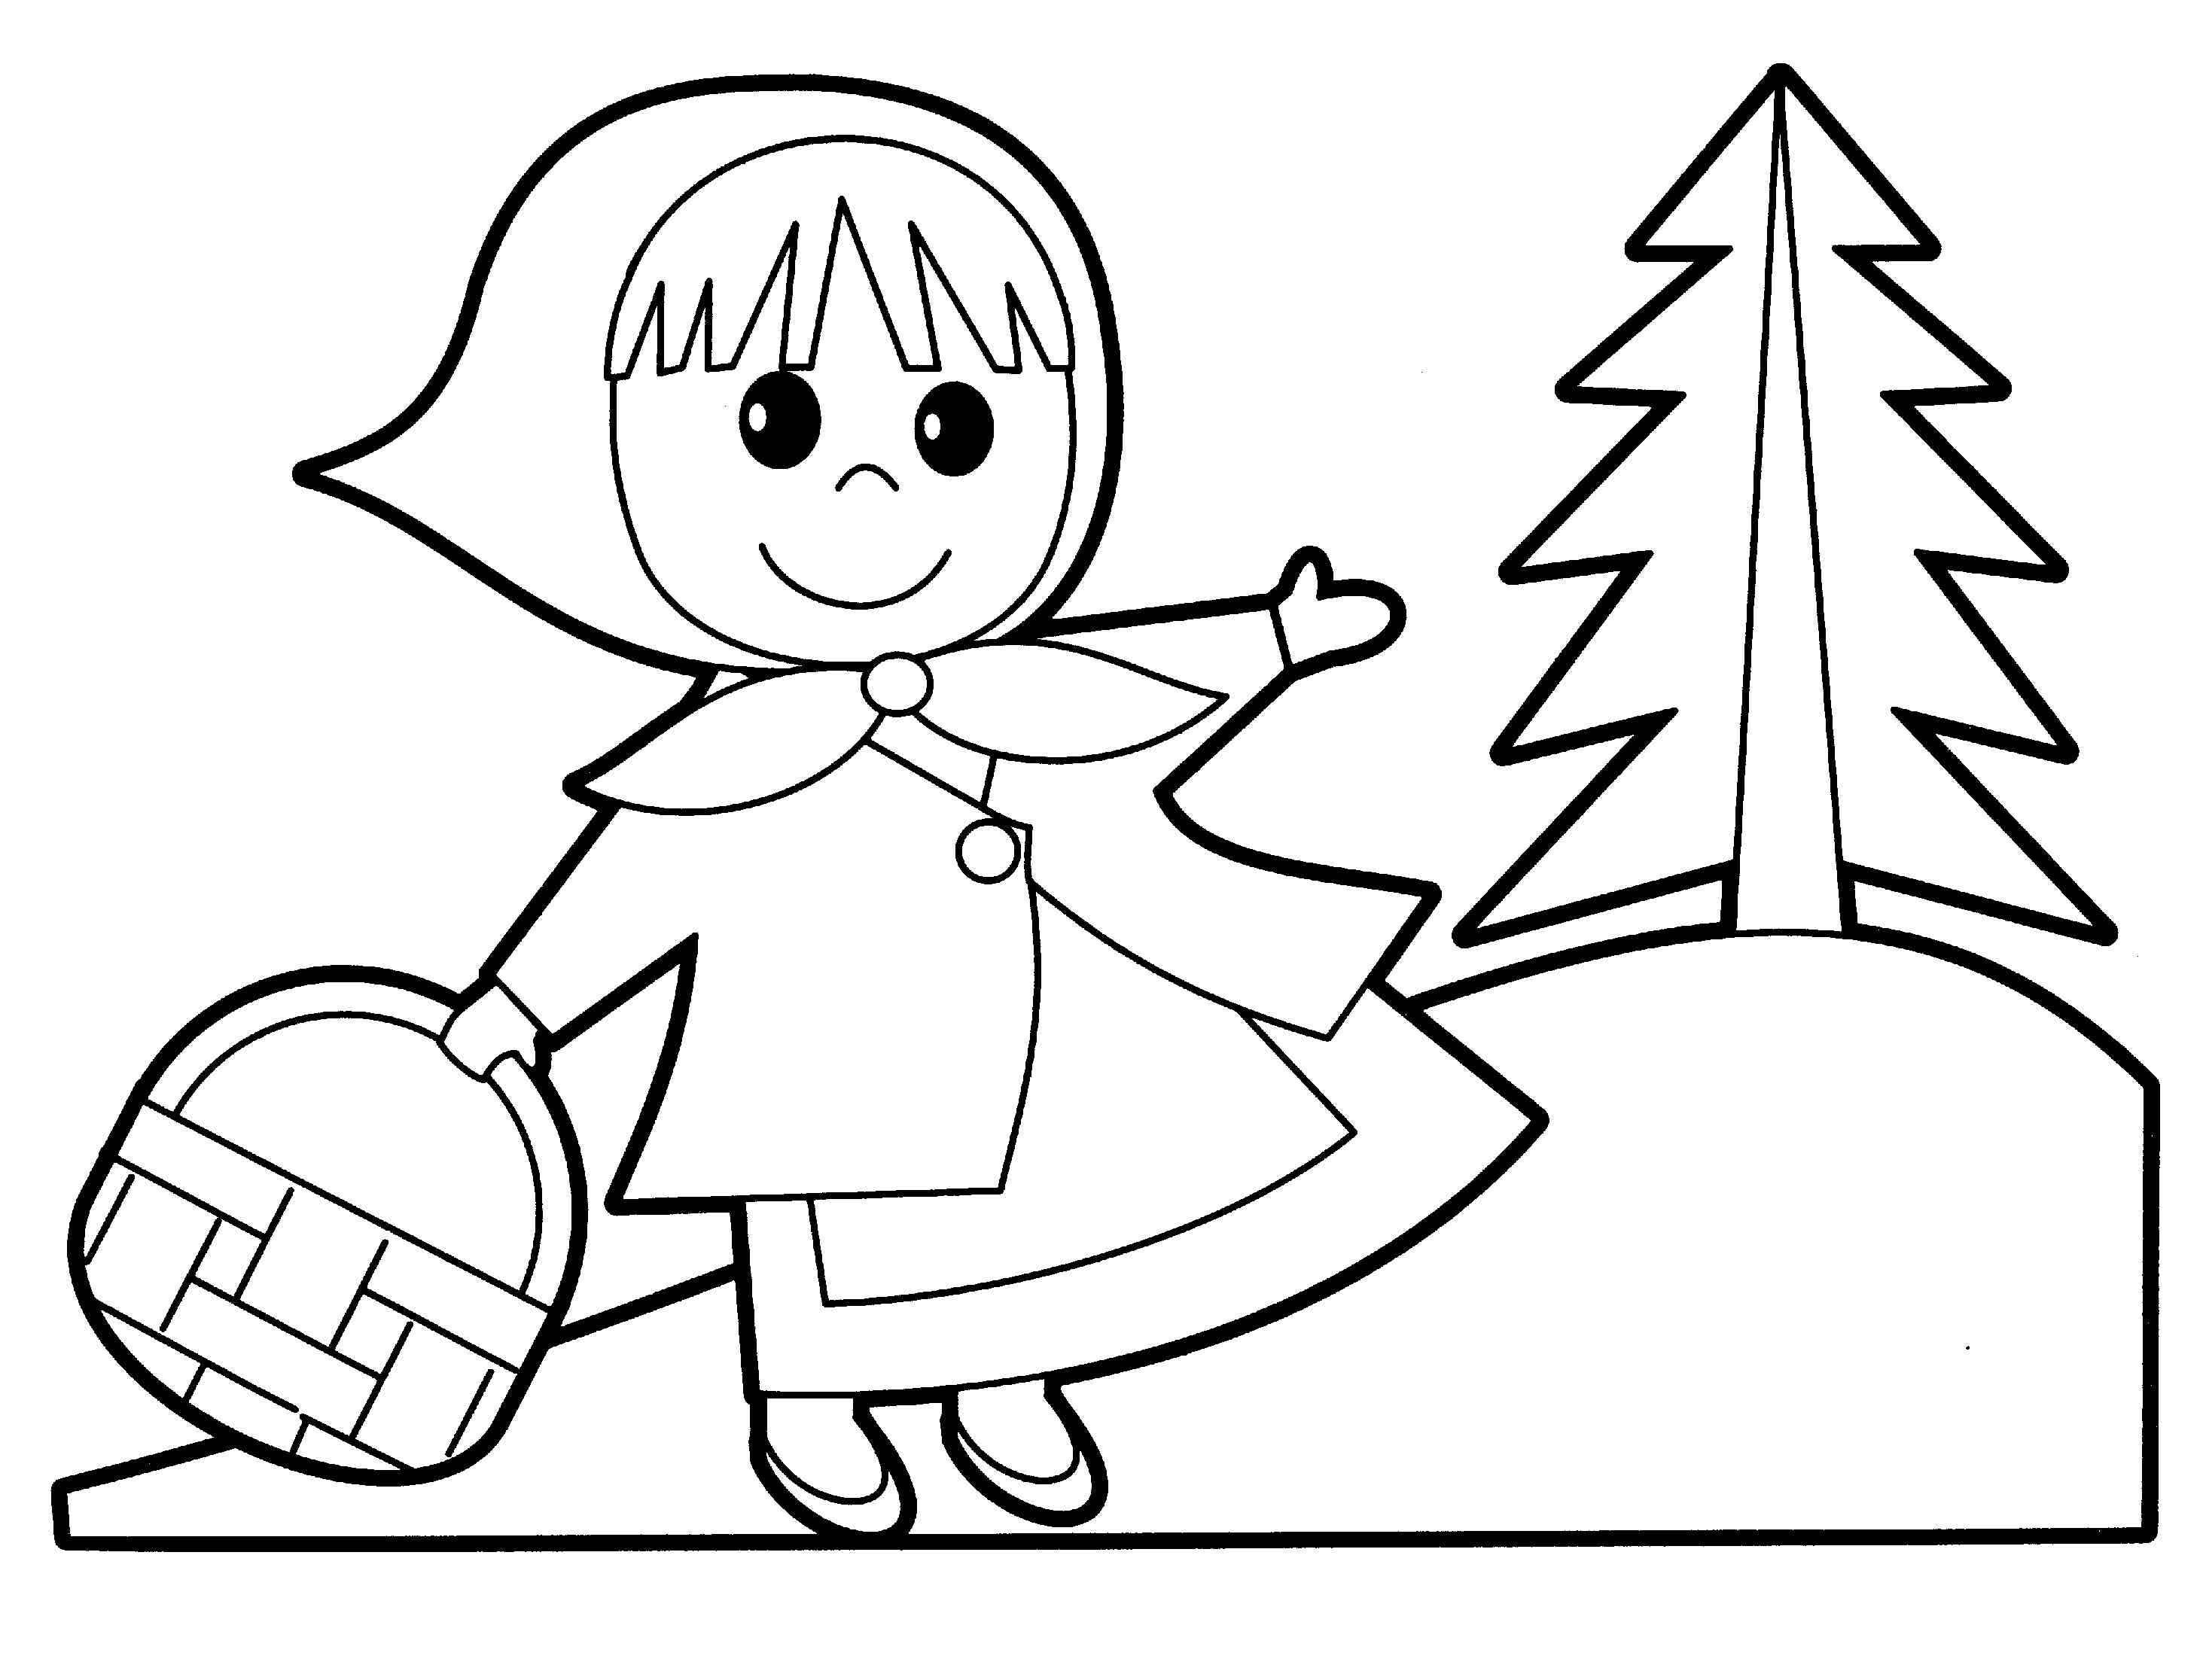 Coloring games of people - Little People Coloring Pages For Babies 24 Free Games For